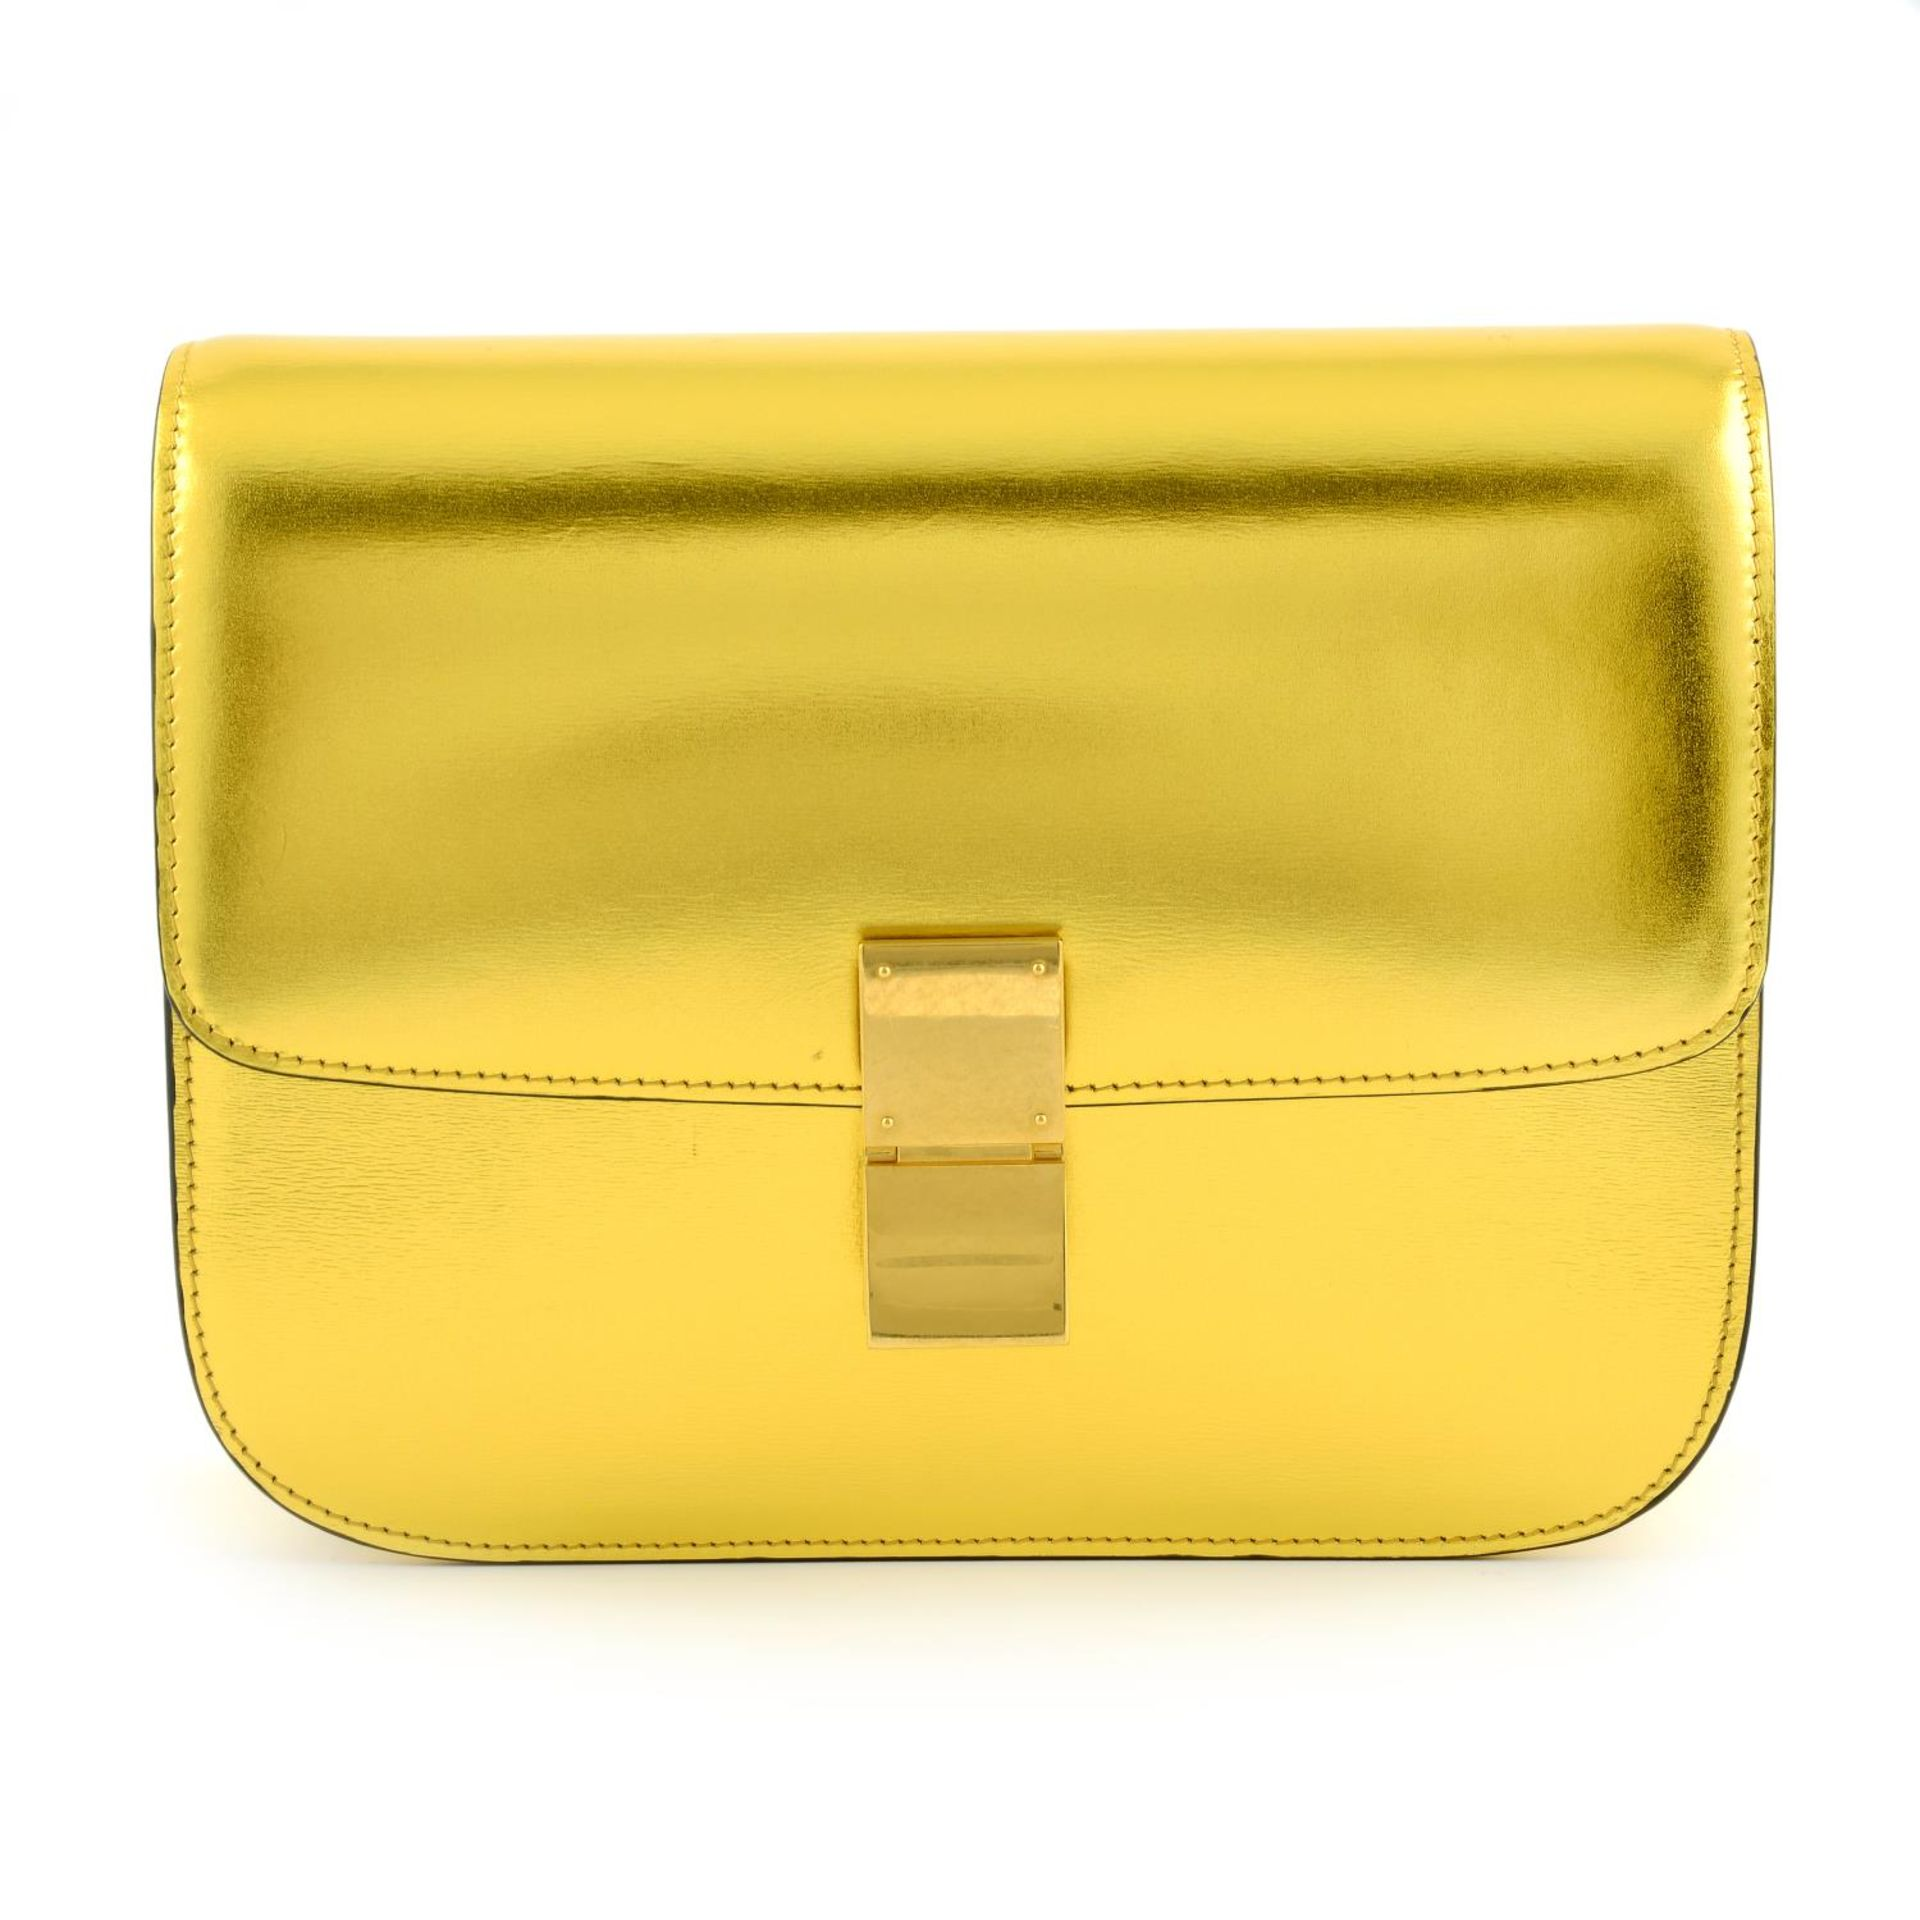 CÉLINE - a metallic gold Box handbag.